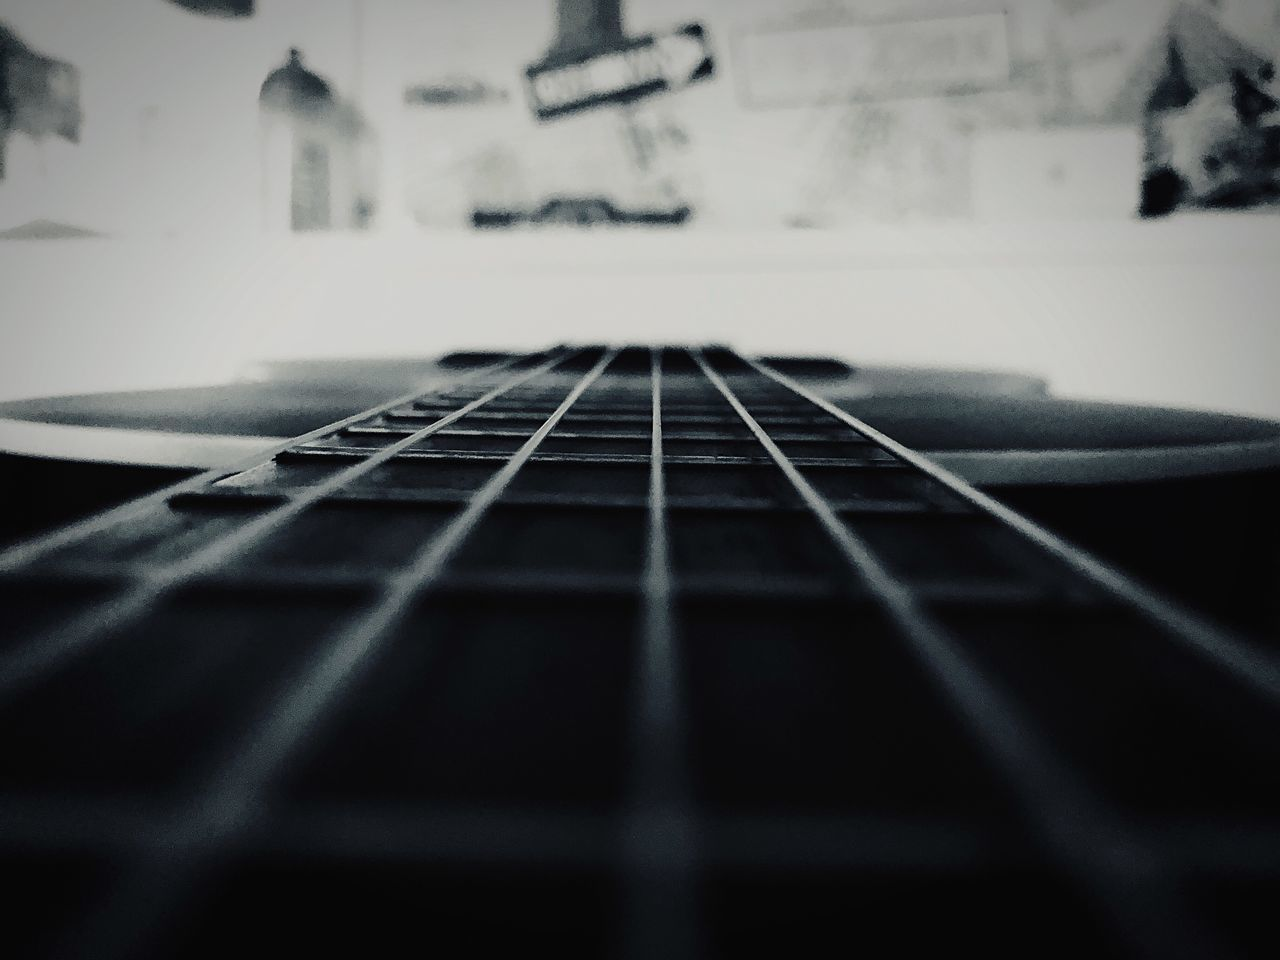 CLOSE-UP OF GUITAR ON STAGE